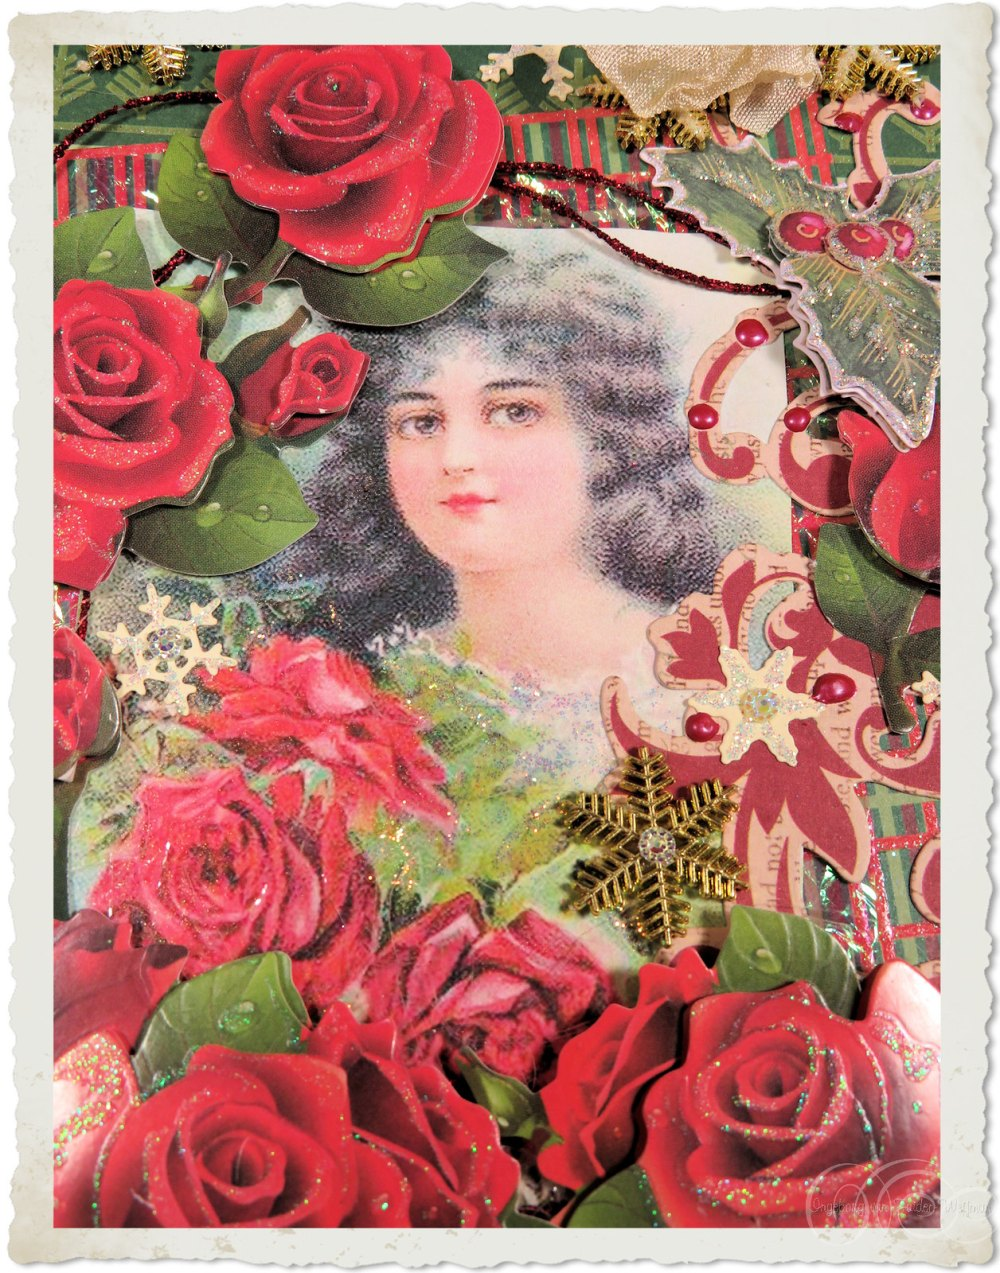 Vintage Christmas girl with red roses and snowflakes by Ingeborg van Zuiden